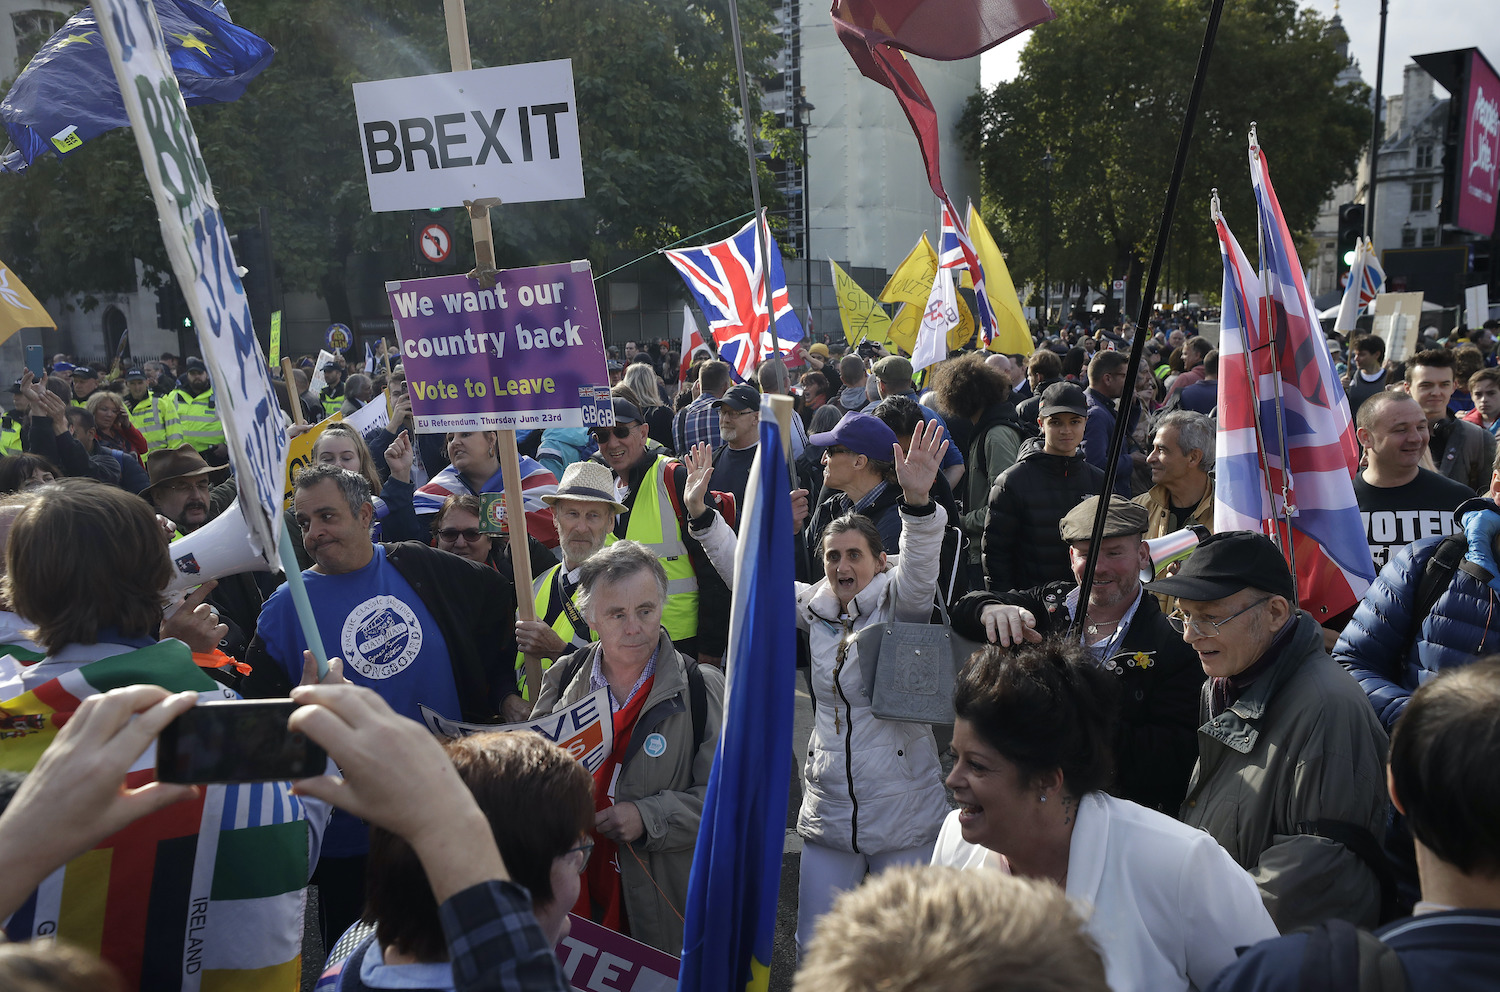 A small group of Brexit supporters mingle with anti-Brexit demonstrators in Parliament Square in London, where Parliament was holding its first Saturday sitting in 37 years to debate the country's exit from the EU. (AP Photo)